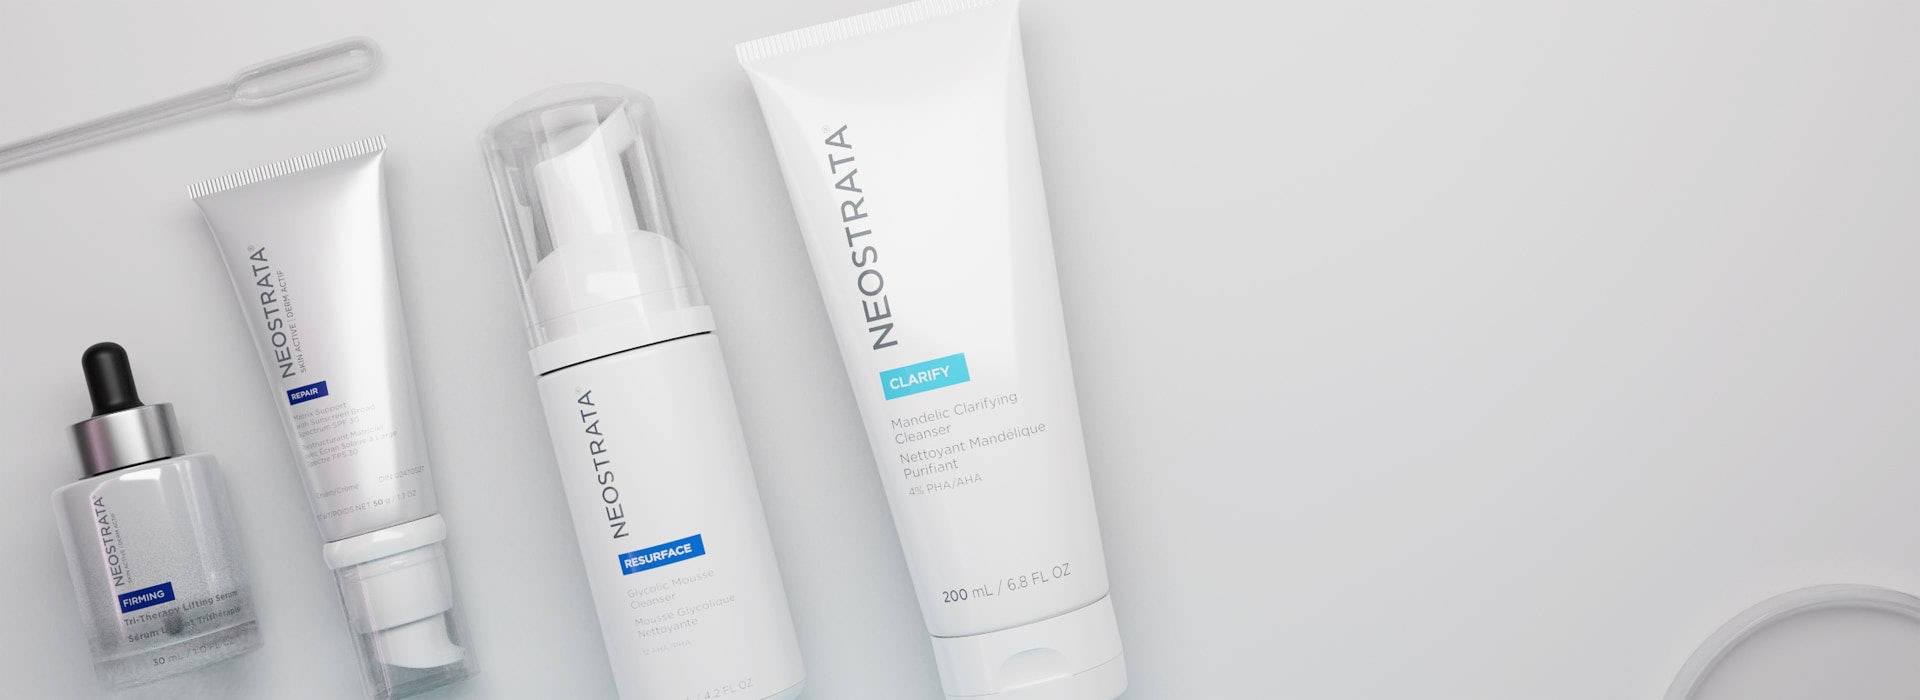 Skin Care Product Types Banner